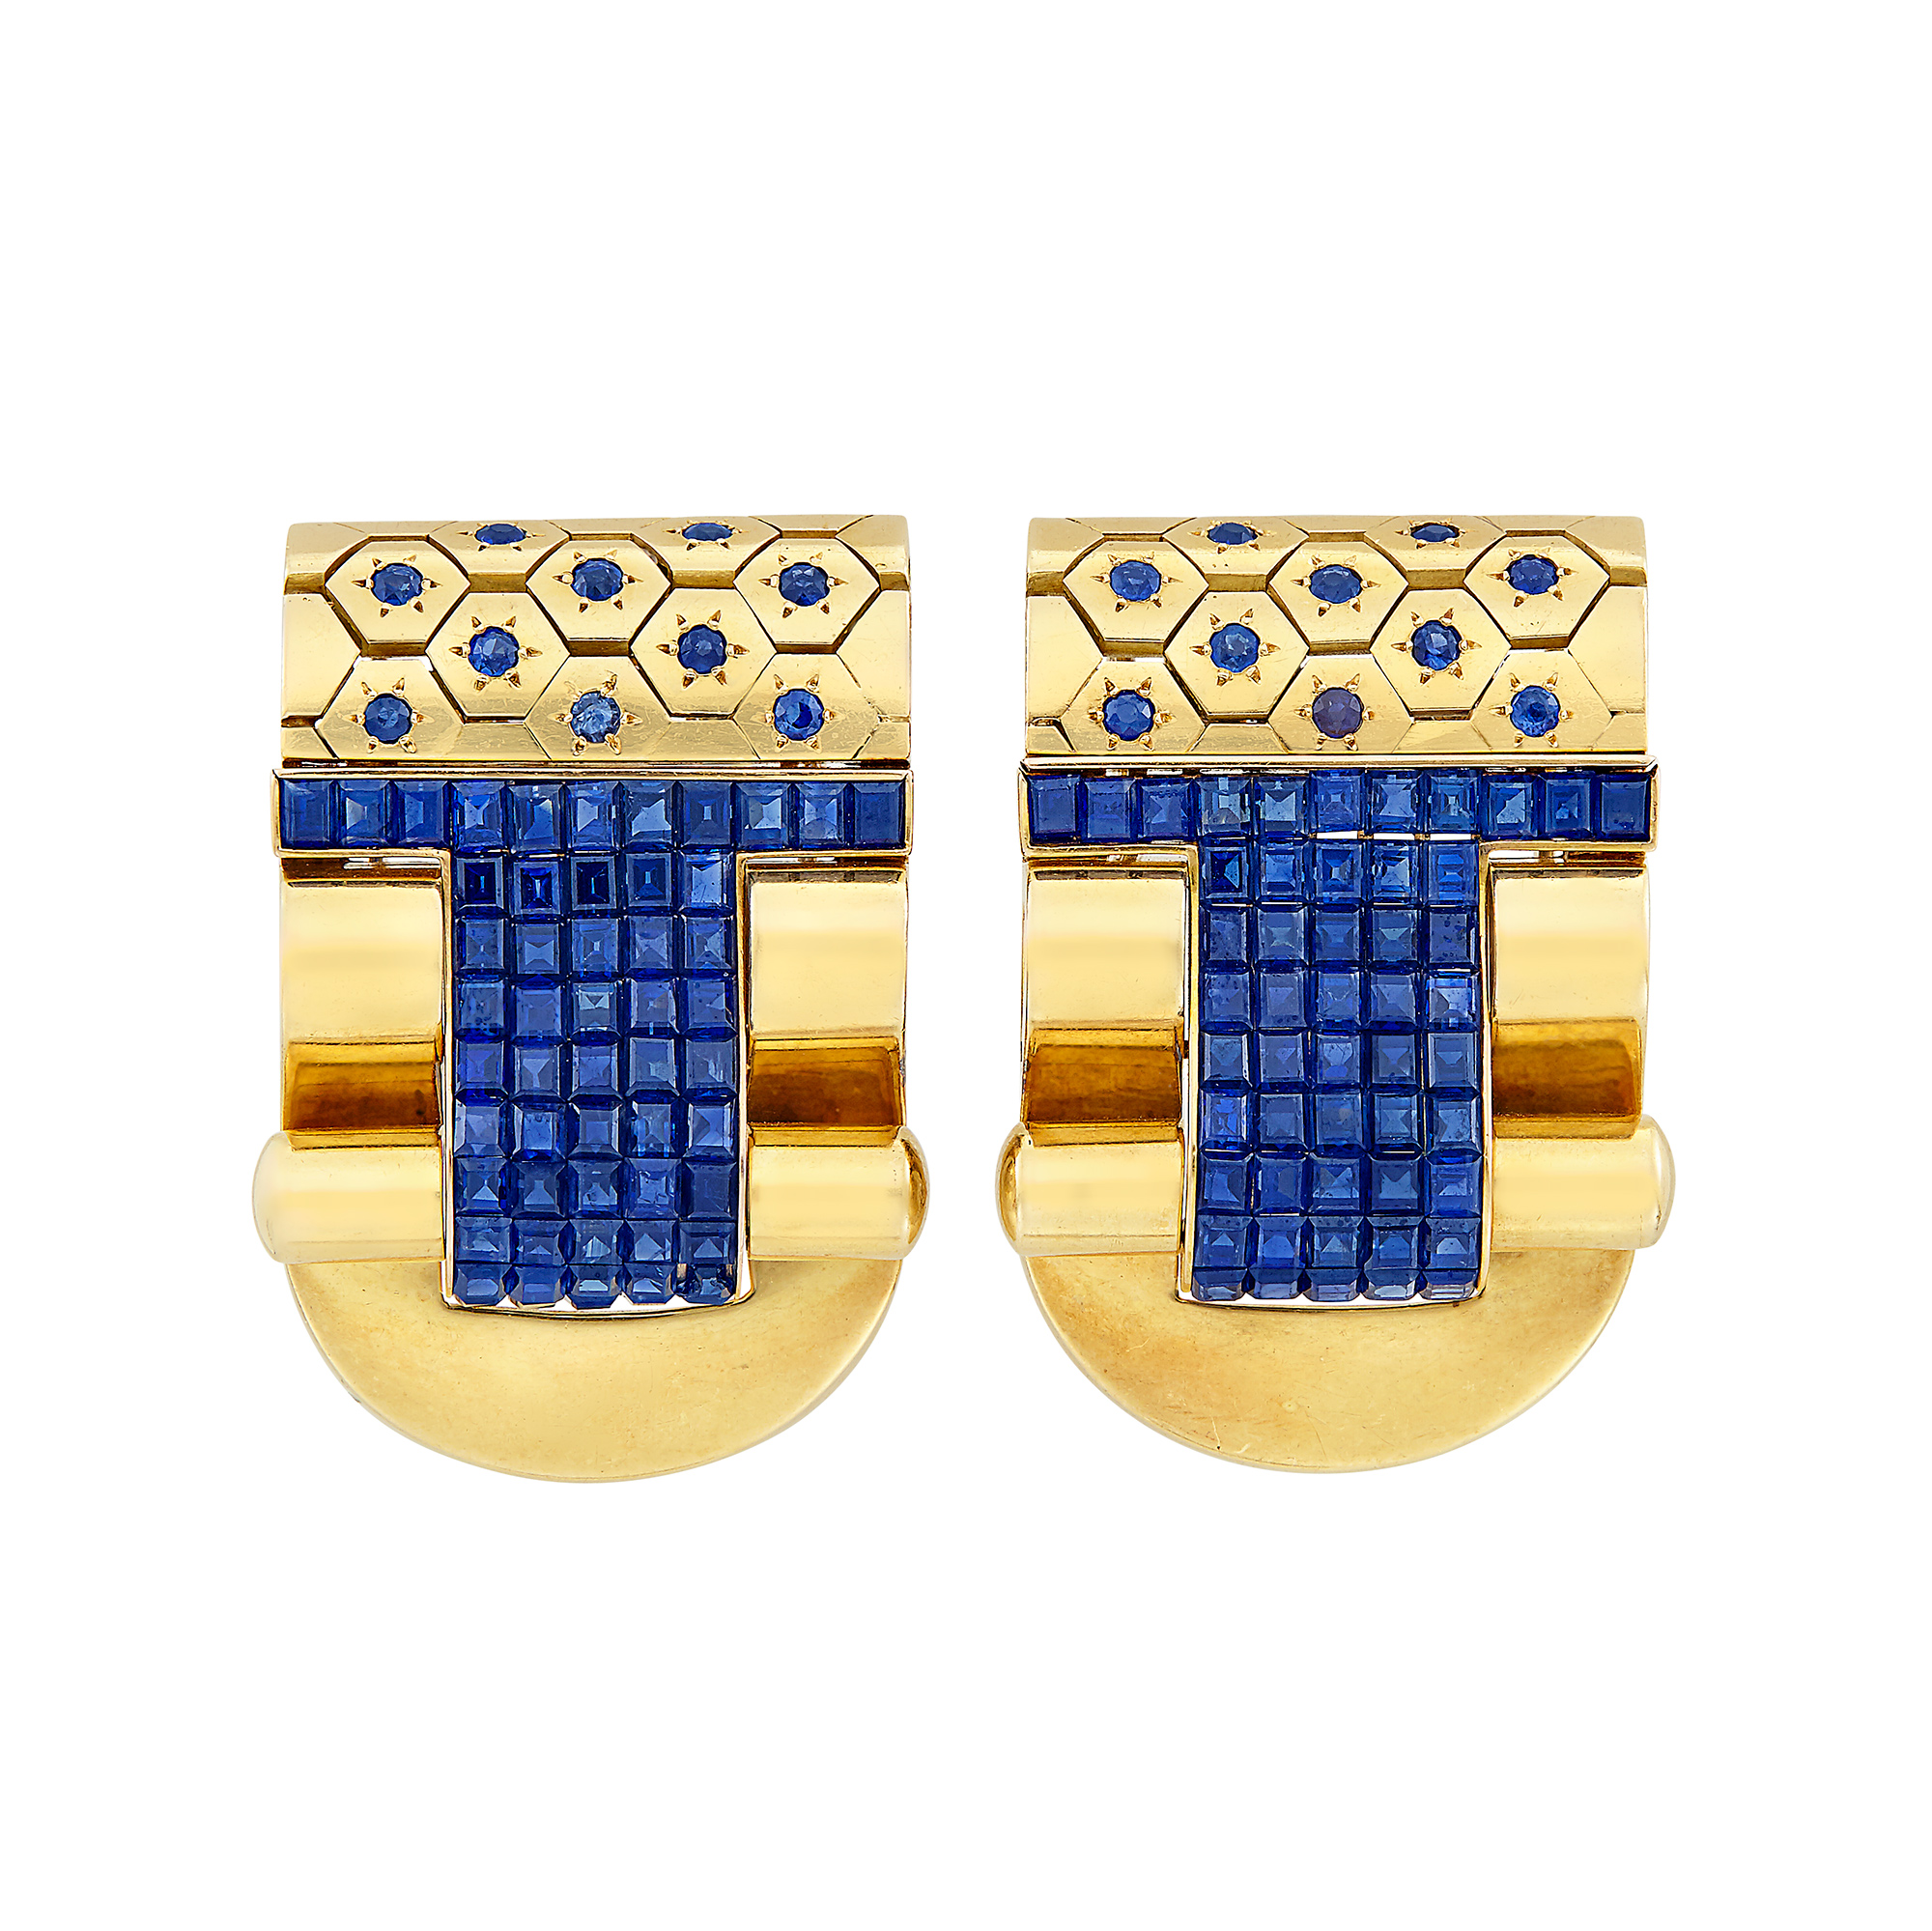 Lot image - Pair of Gold and Sapphire Clips, France